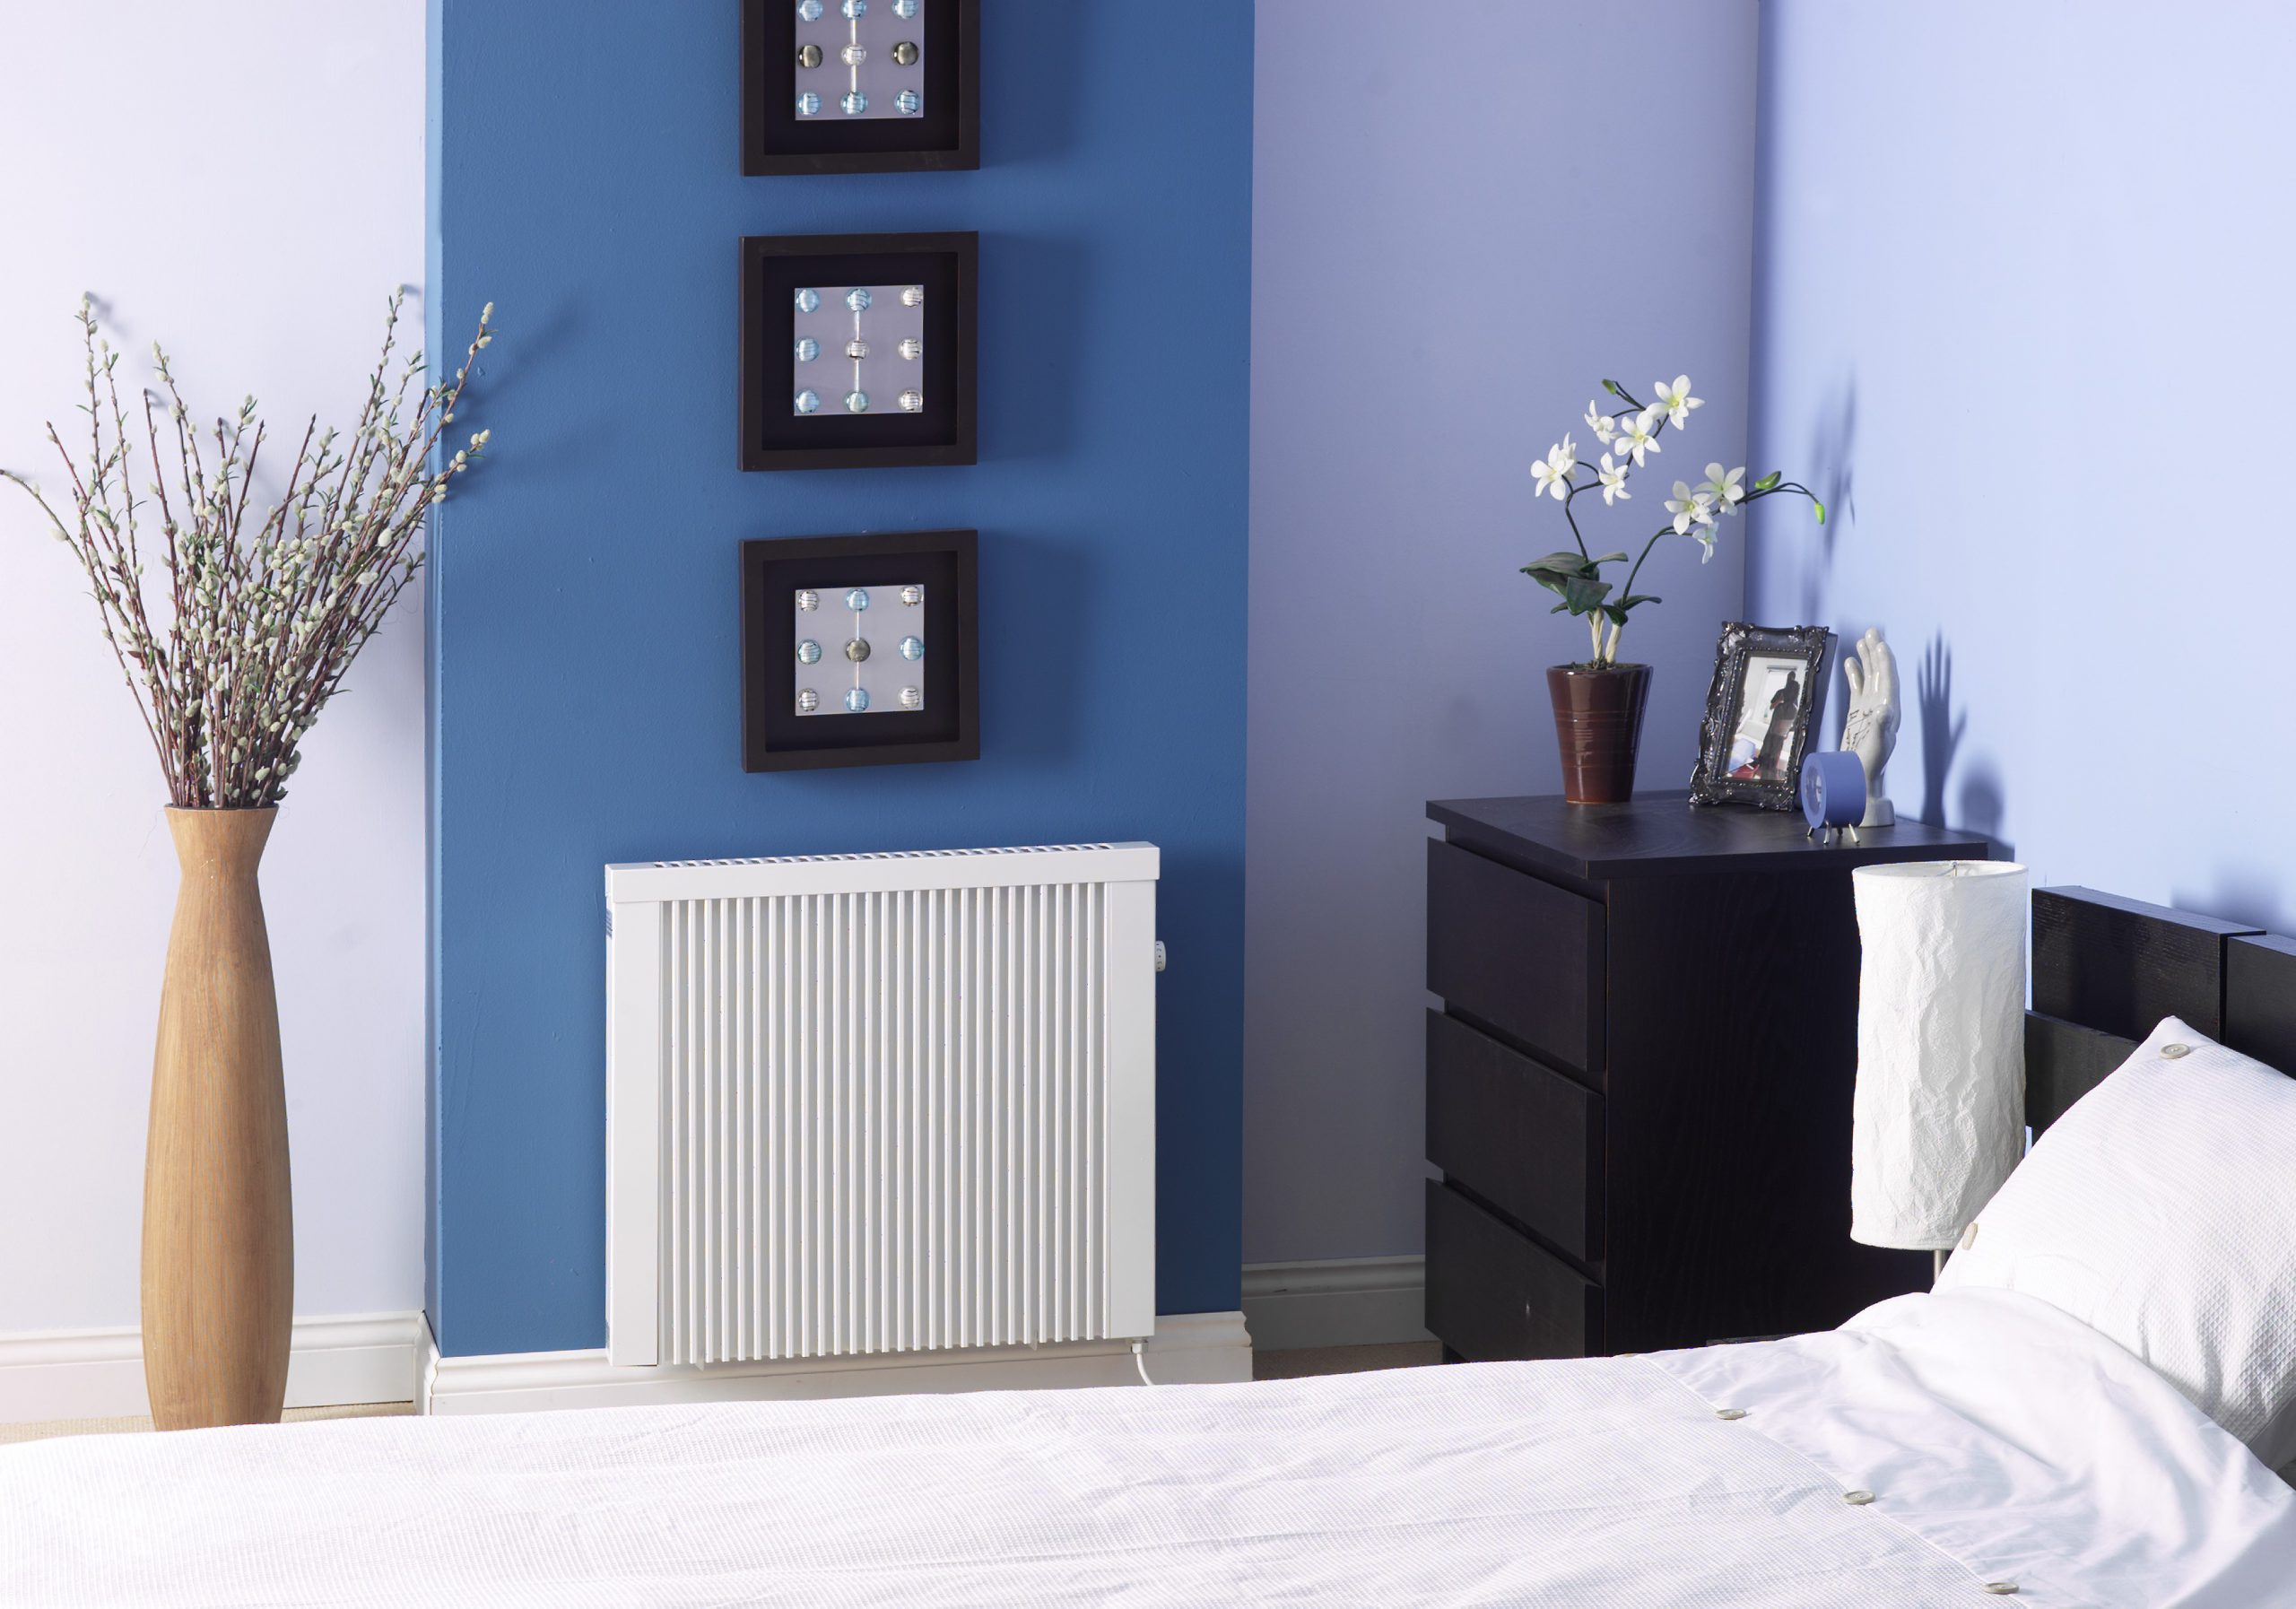 ) LHZ Electric radiators. LHZ Premium Quality German Electric Radiators The LHZ Combination Electric Radiators have been designed using the latest technology to create an elegant solution for all hard to heat situations.